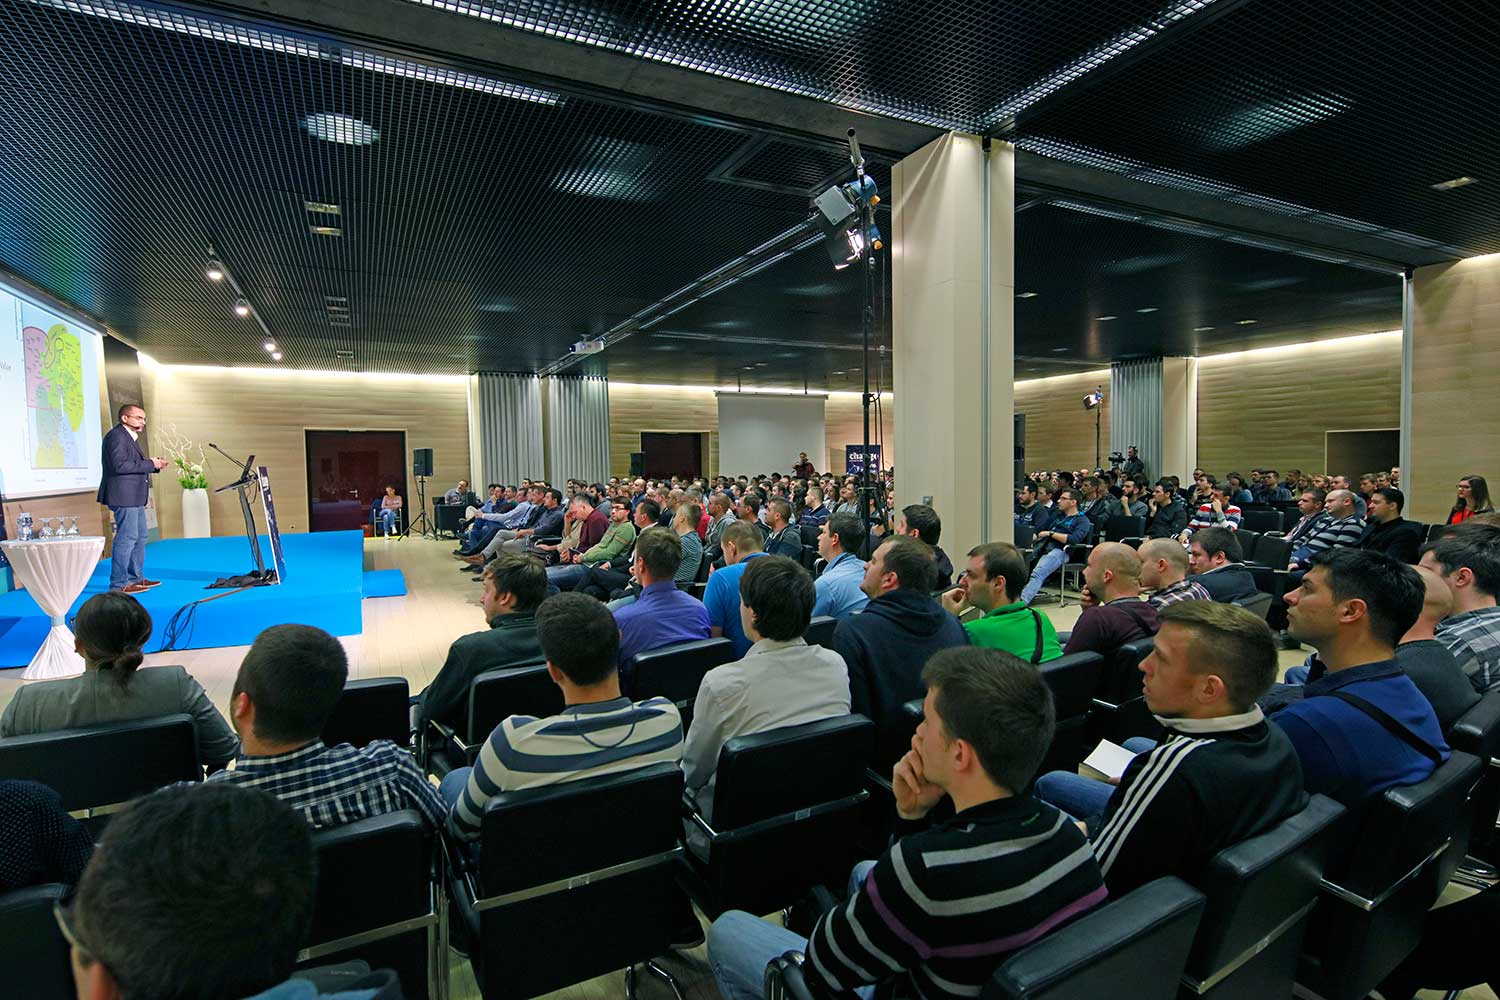 http://2016.changecon.com/wp-content/uploads/2016/10/Nenad_Bakic_audience.jpg